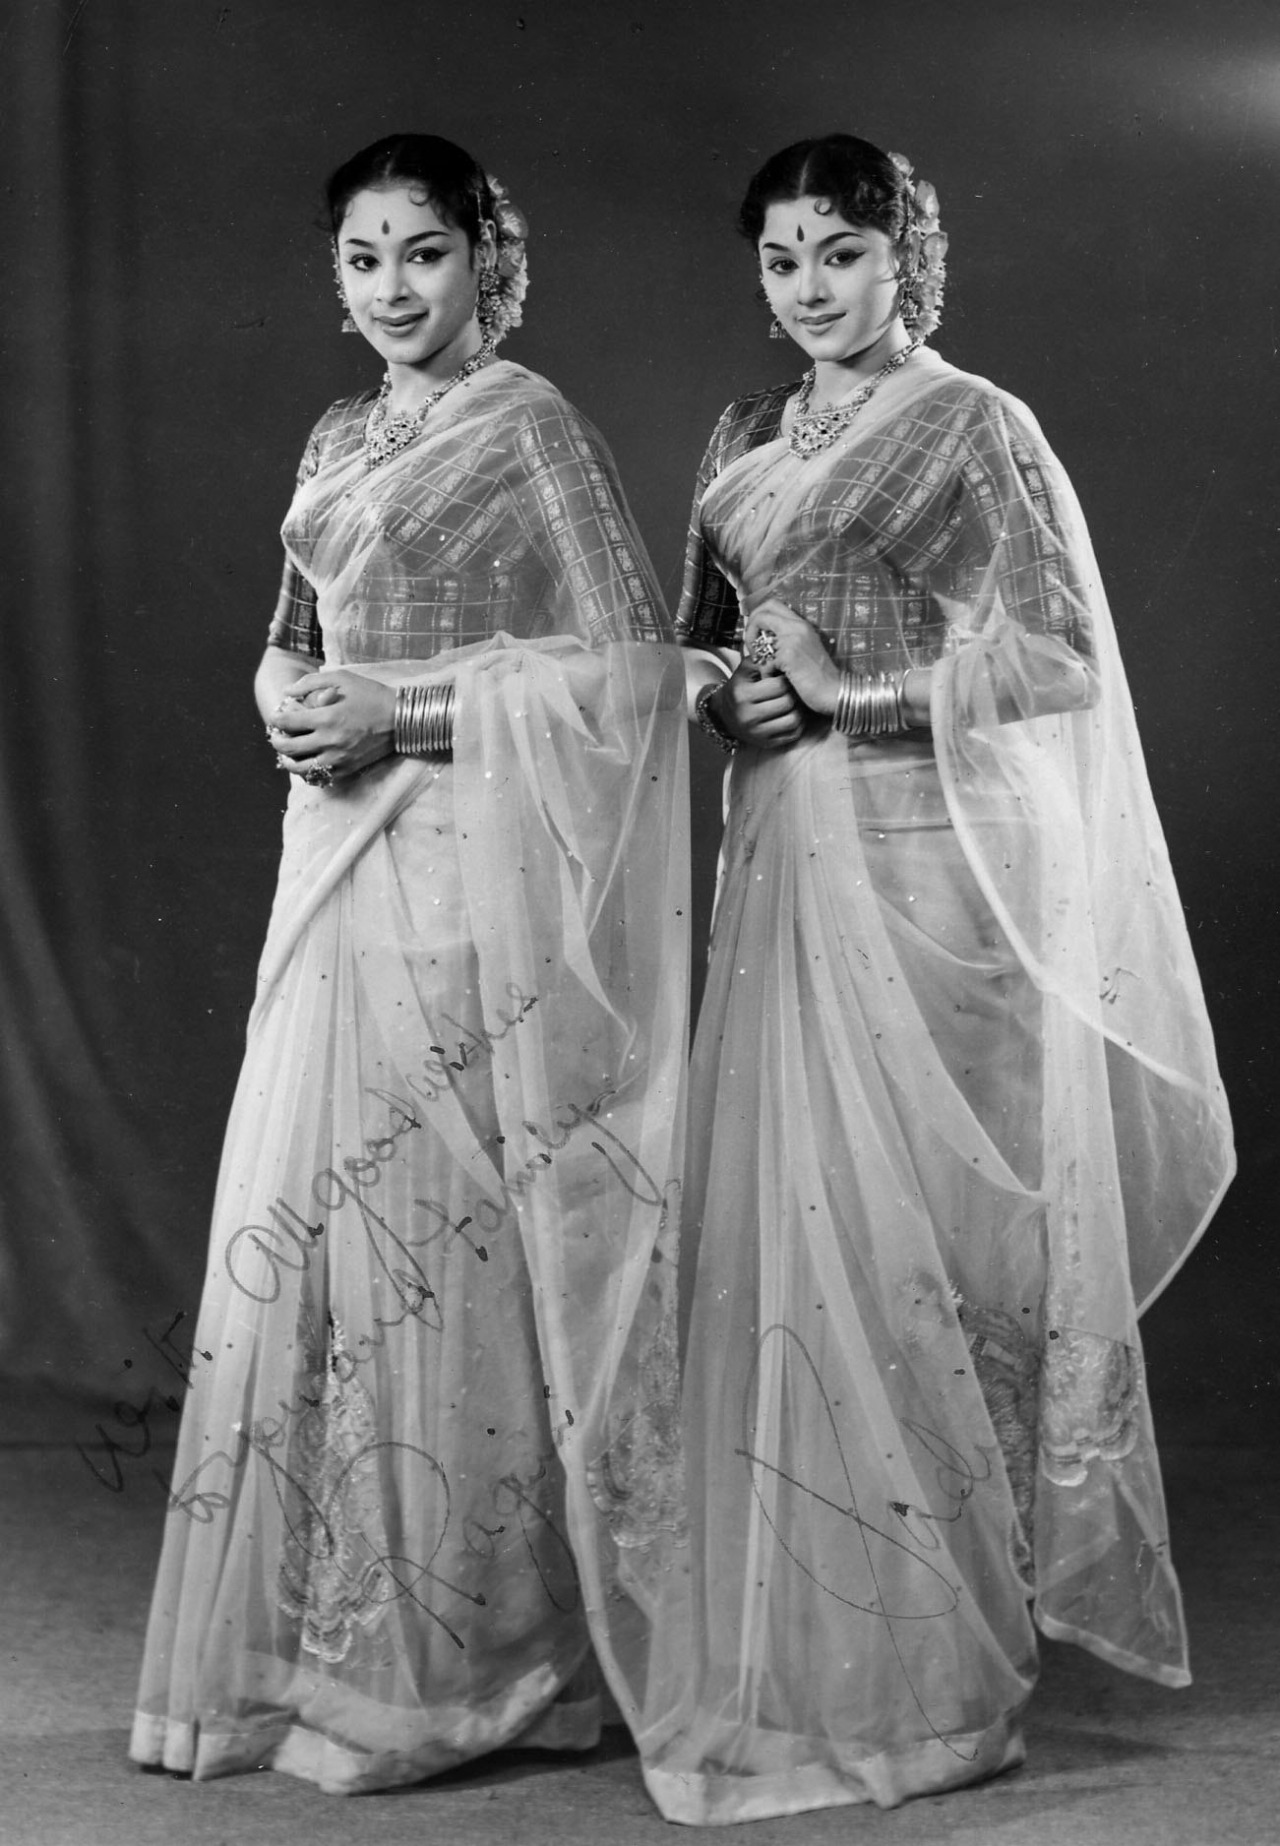 Two of the Travancore sisters trio - Ragini and Padmini